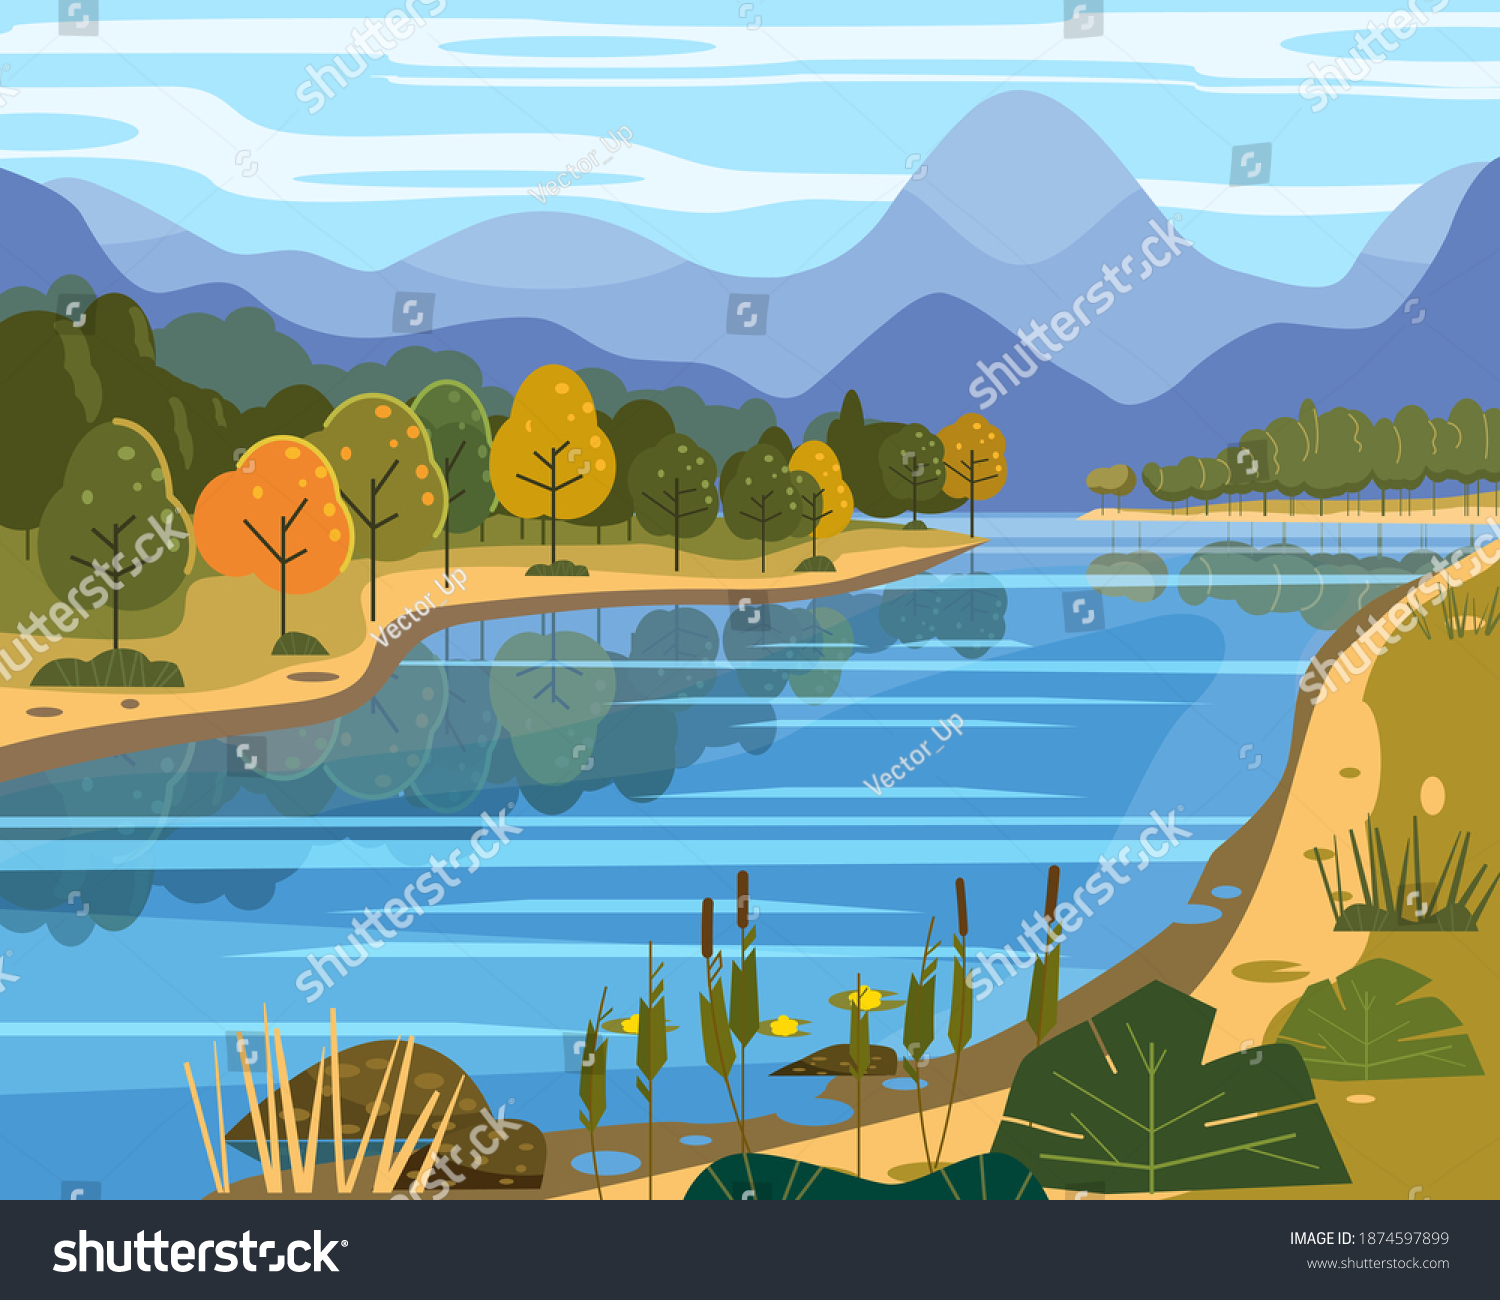 Landscape river flowing to mountains, hills. Coast autumn scenic forest, meadows. Vector illustration background poster banner trendy flat cartoon style #1874597899